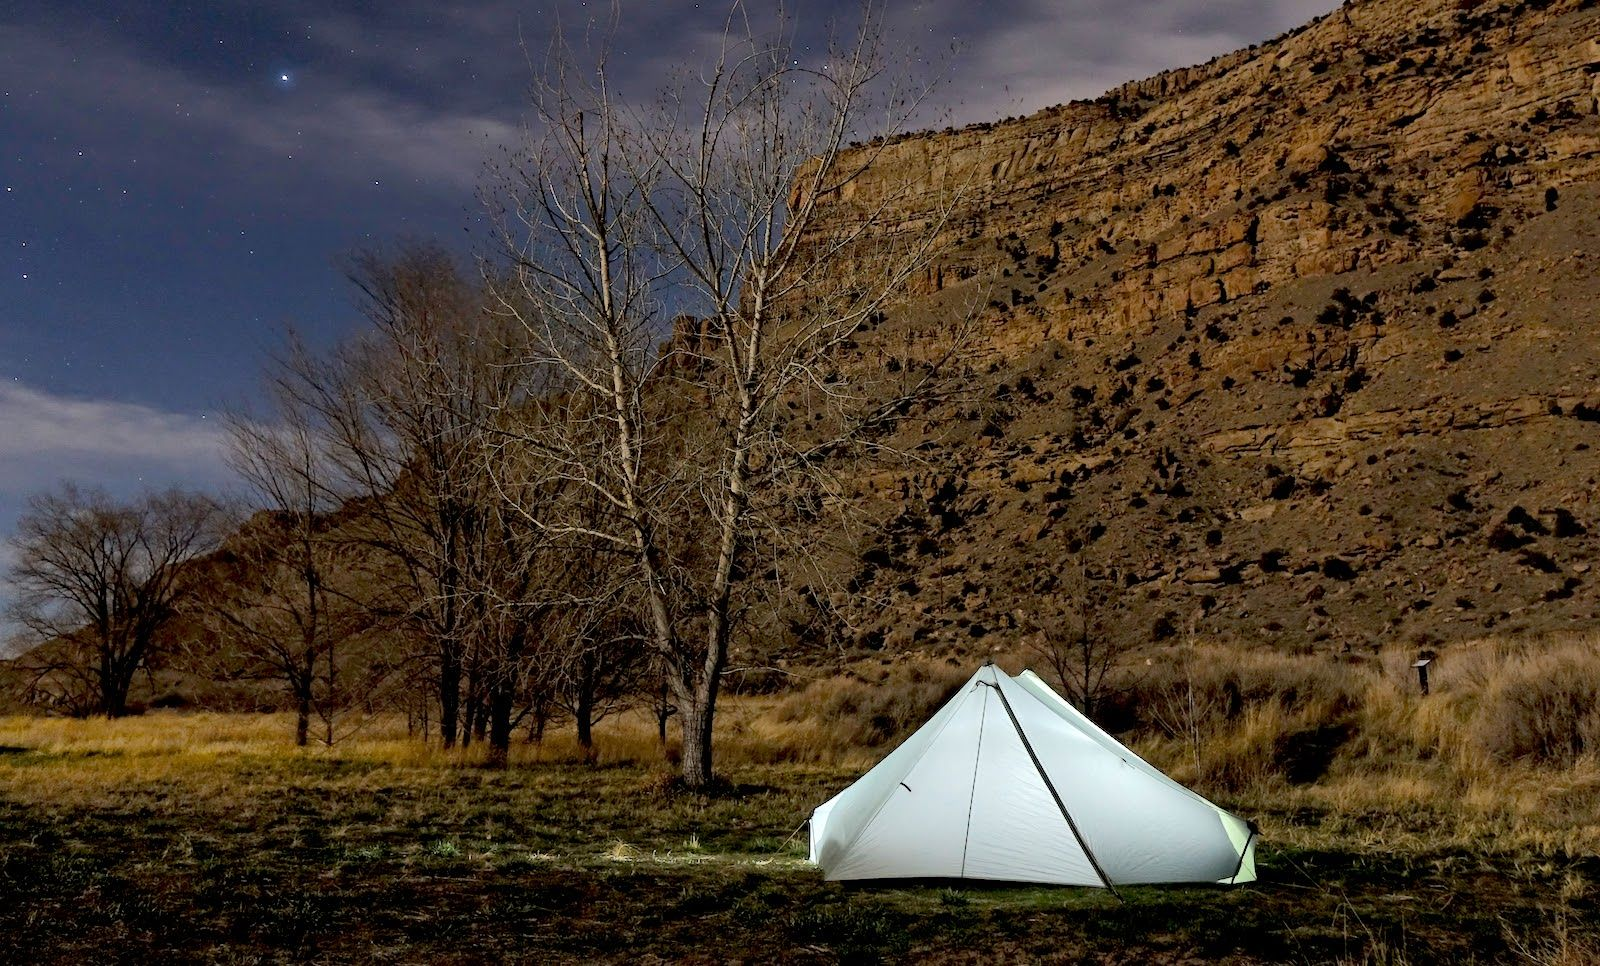 Tarptent Stratospire 1 Review Backpacking Light Light Backpack Colorado River Outdoor Gear